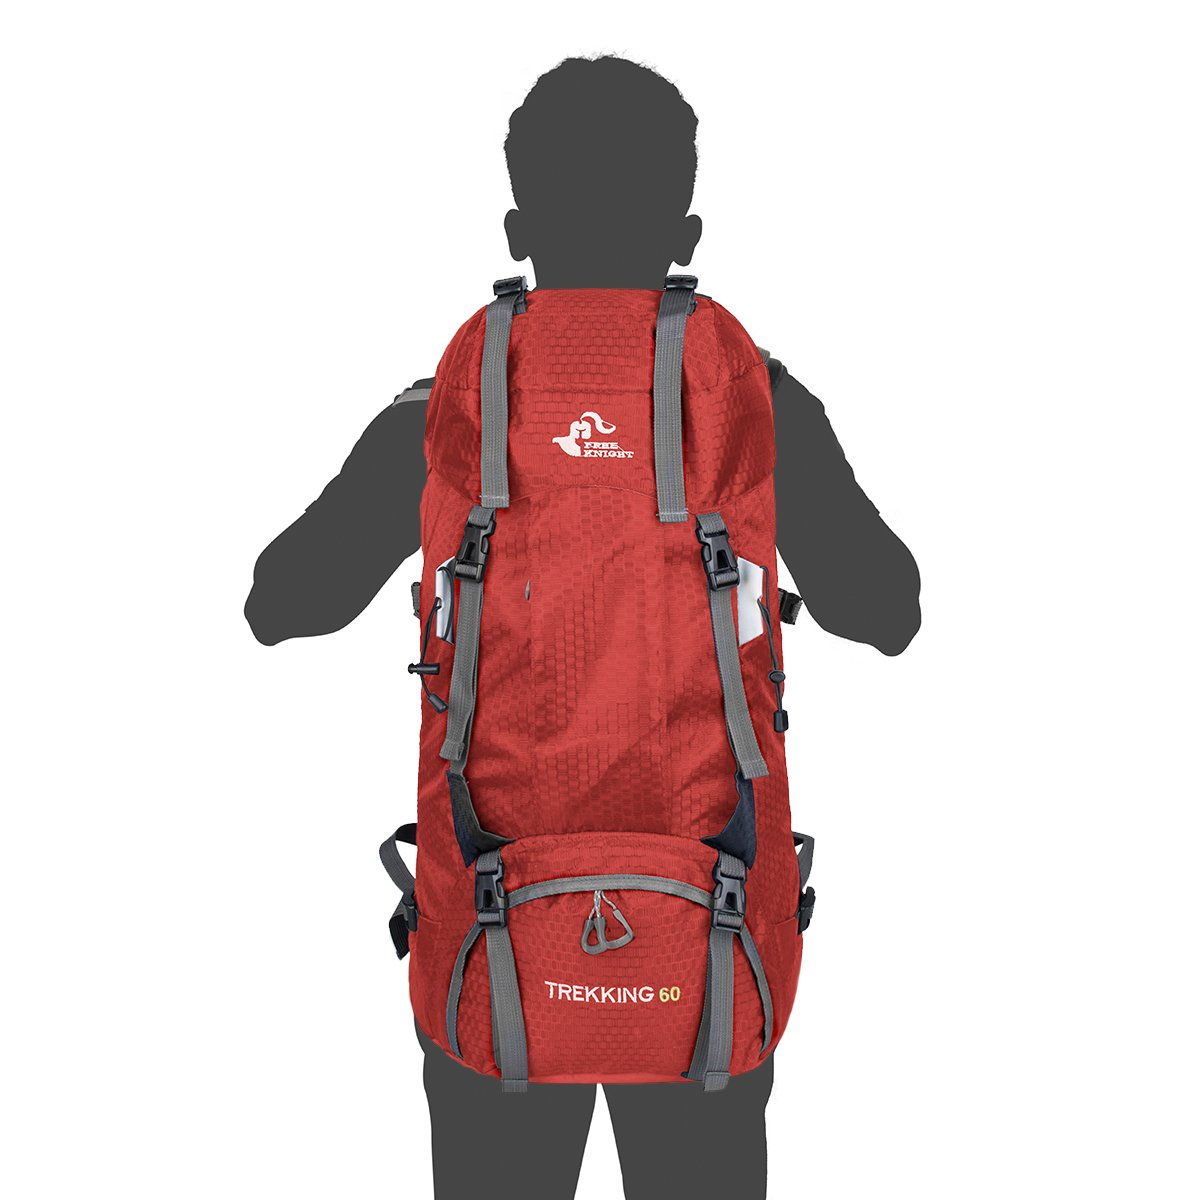 60L Water Resistant Hiking Backpack Outdoor Sports Bag with Rain Cover for Camping Climbing Mountaineering Fishing Cycling Skiing Travel Daypack Women Men Unisex Size 12.9\'\'x 7.8\'\'x 26.7\'\' (Red)